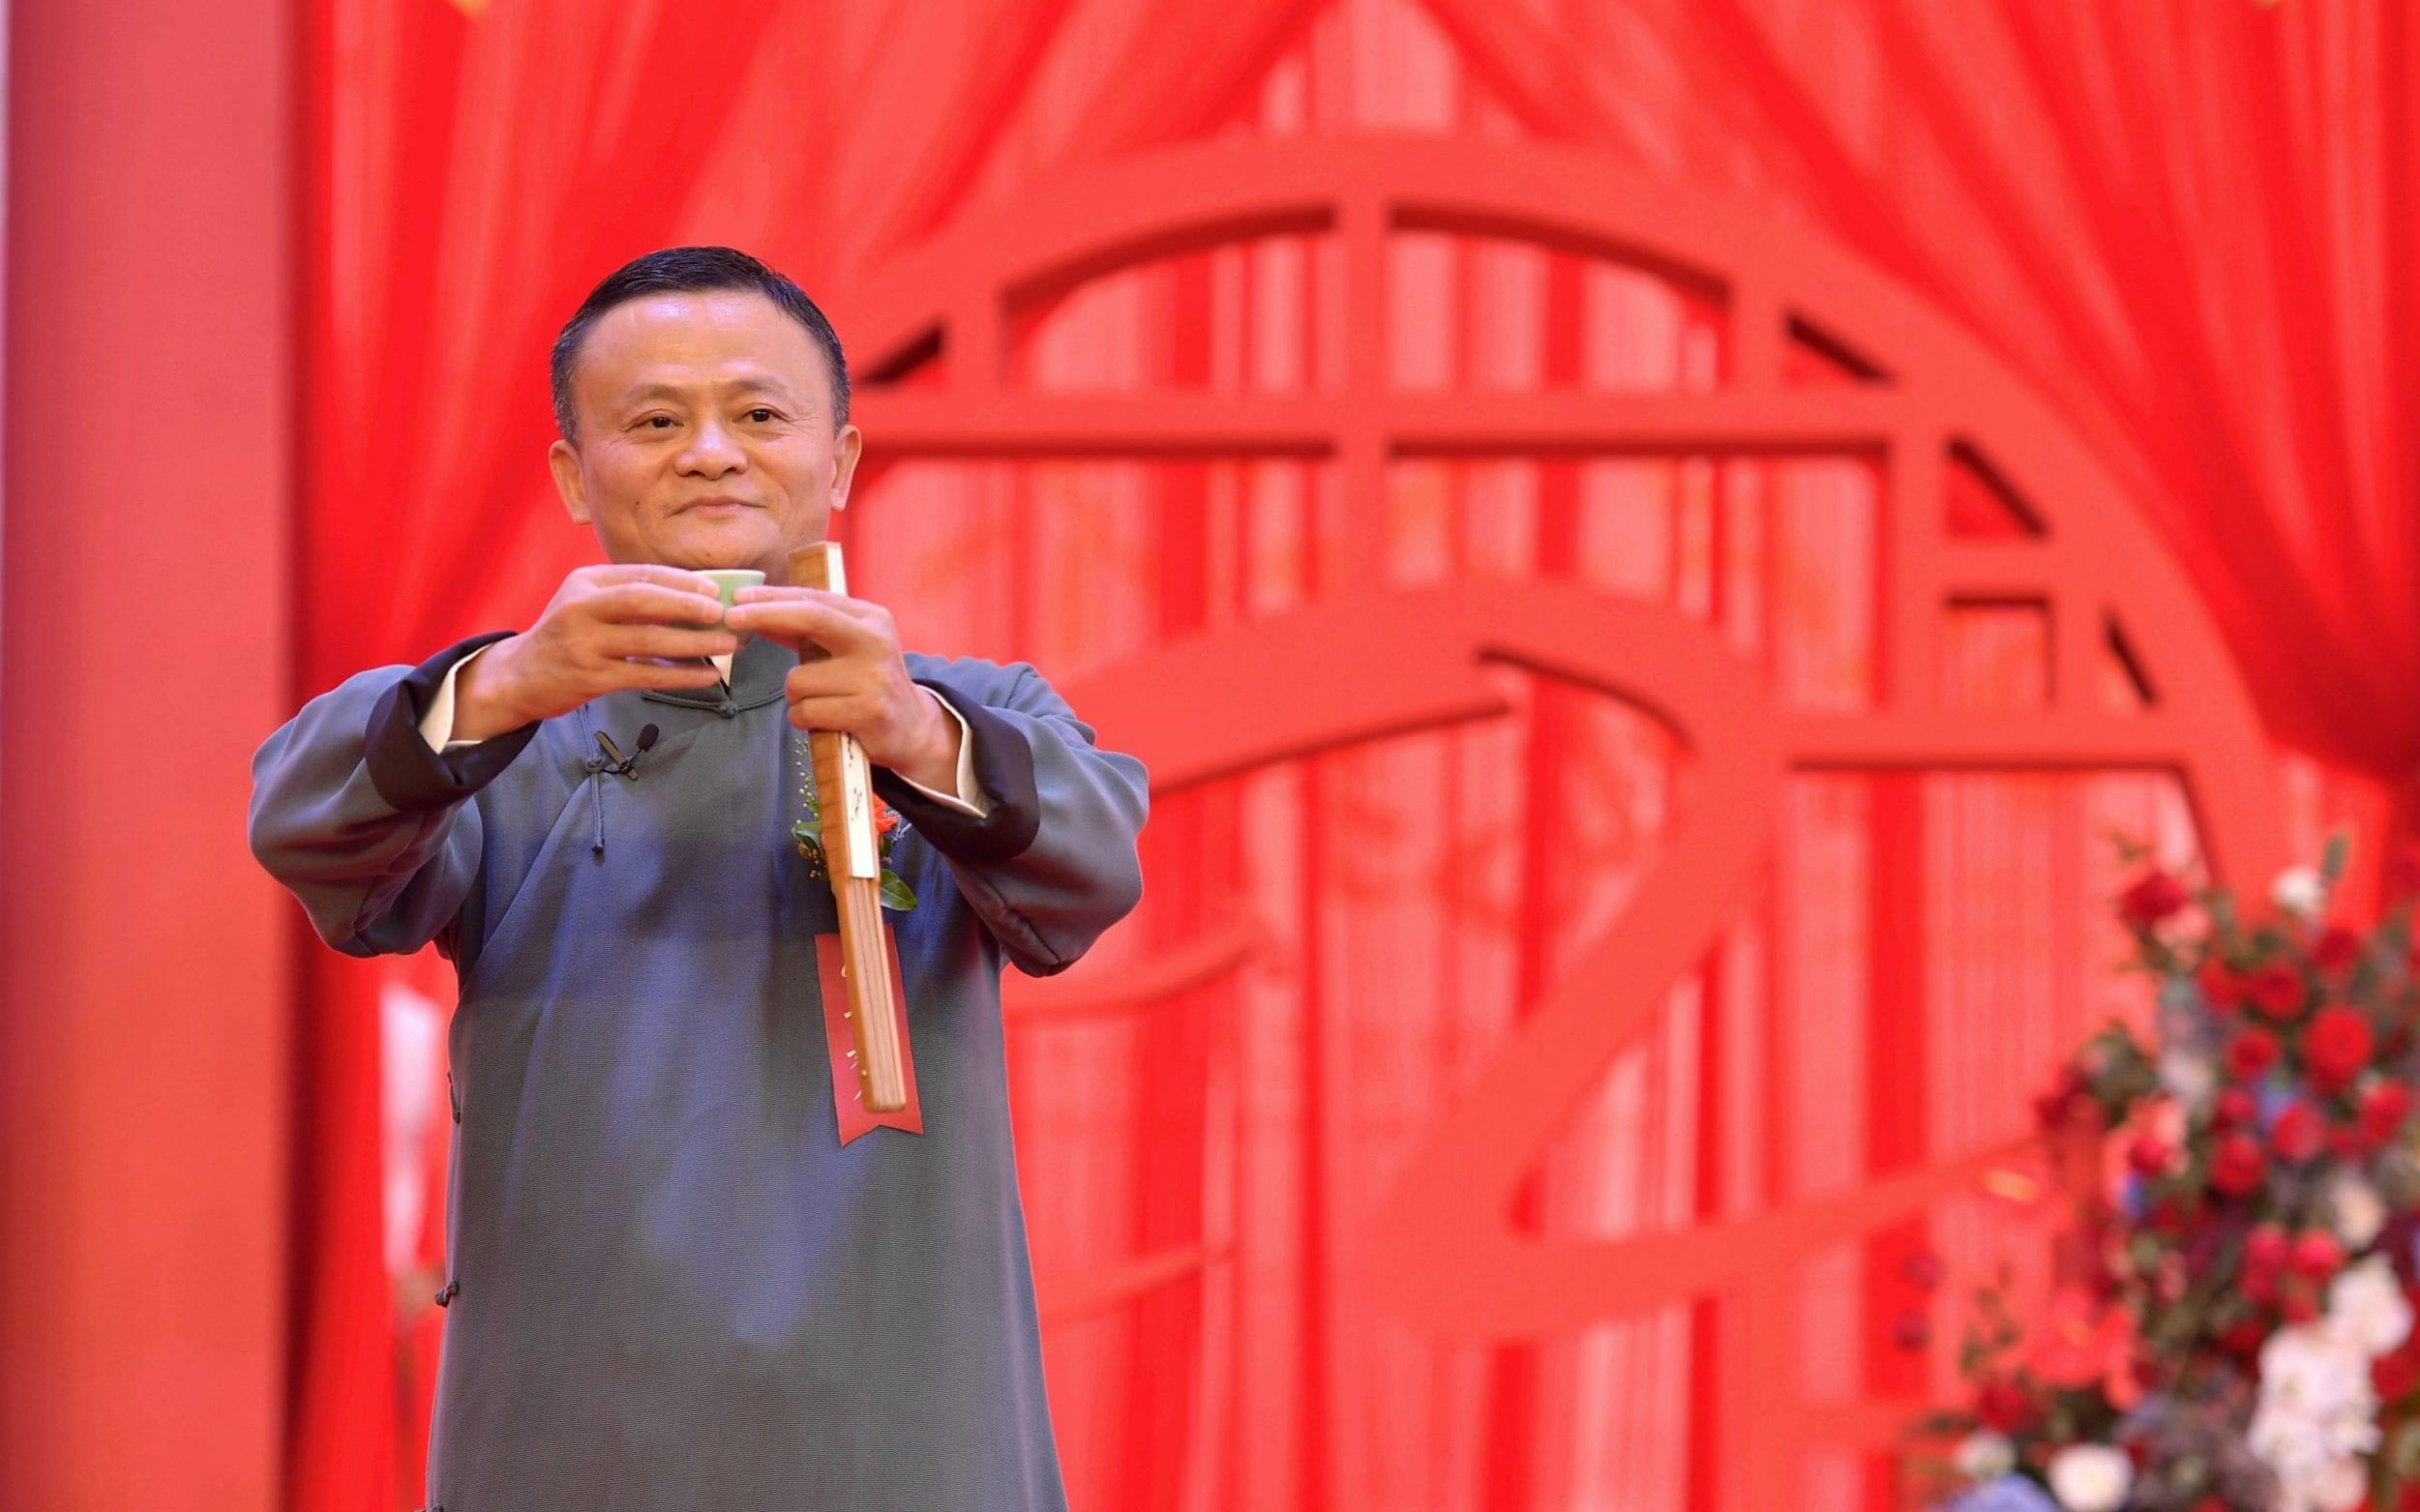 Alibaba founder Jack Ma says staff should have sex six times in six days